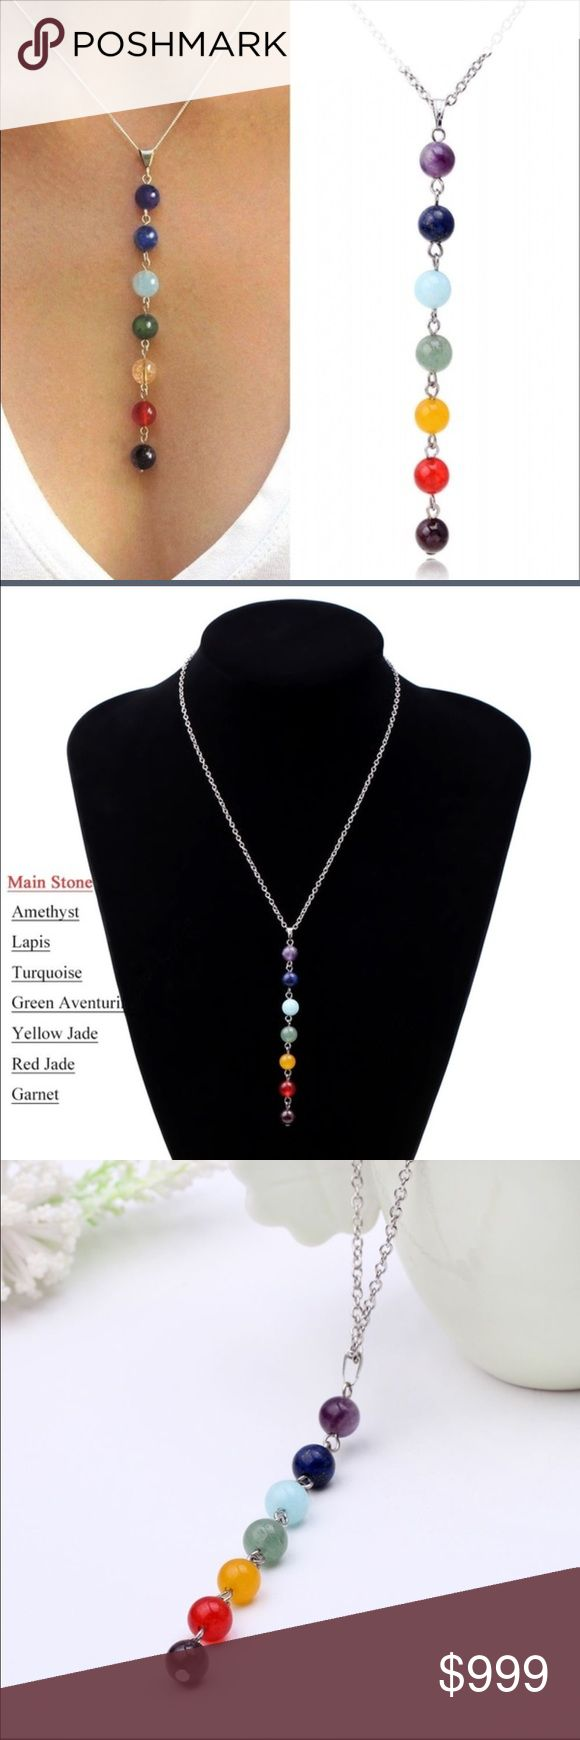 🆕JUST IN- Chakra Necklace Multicolor stones in a chakra necklace. Silver tone chain with adjustable length. Direct from vendor. Jewelry Necklaces